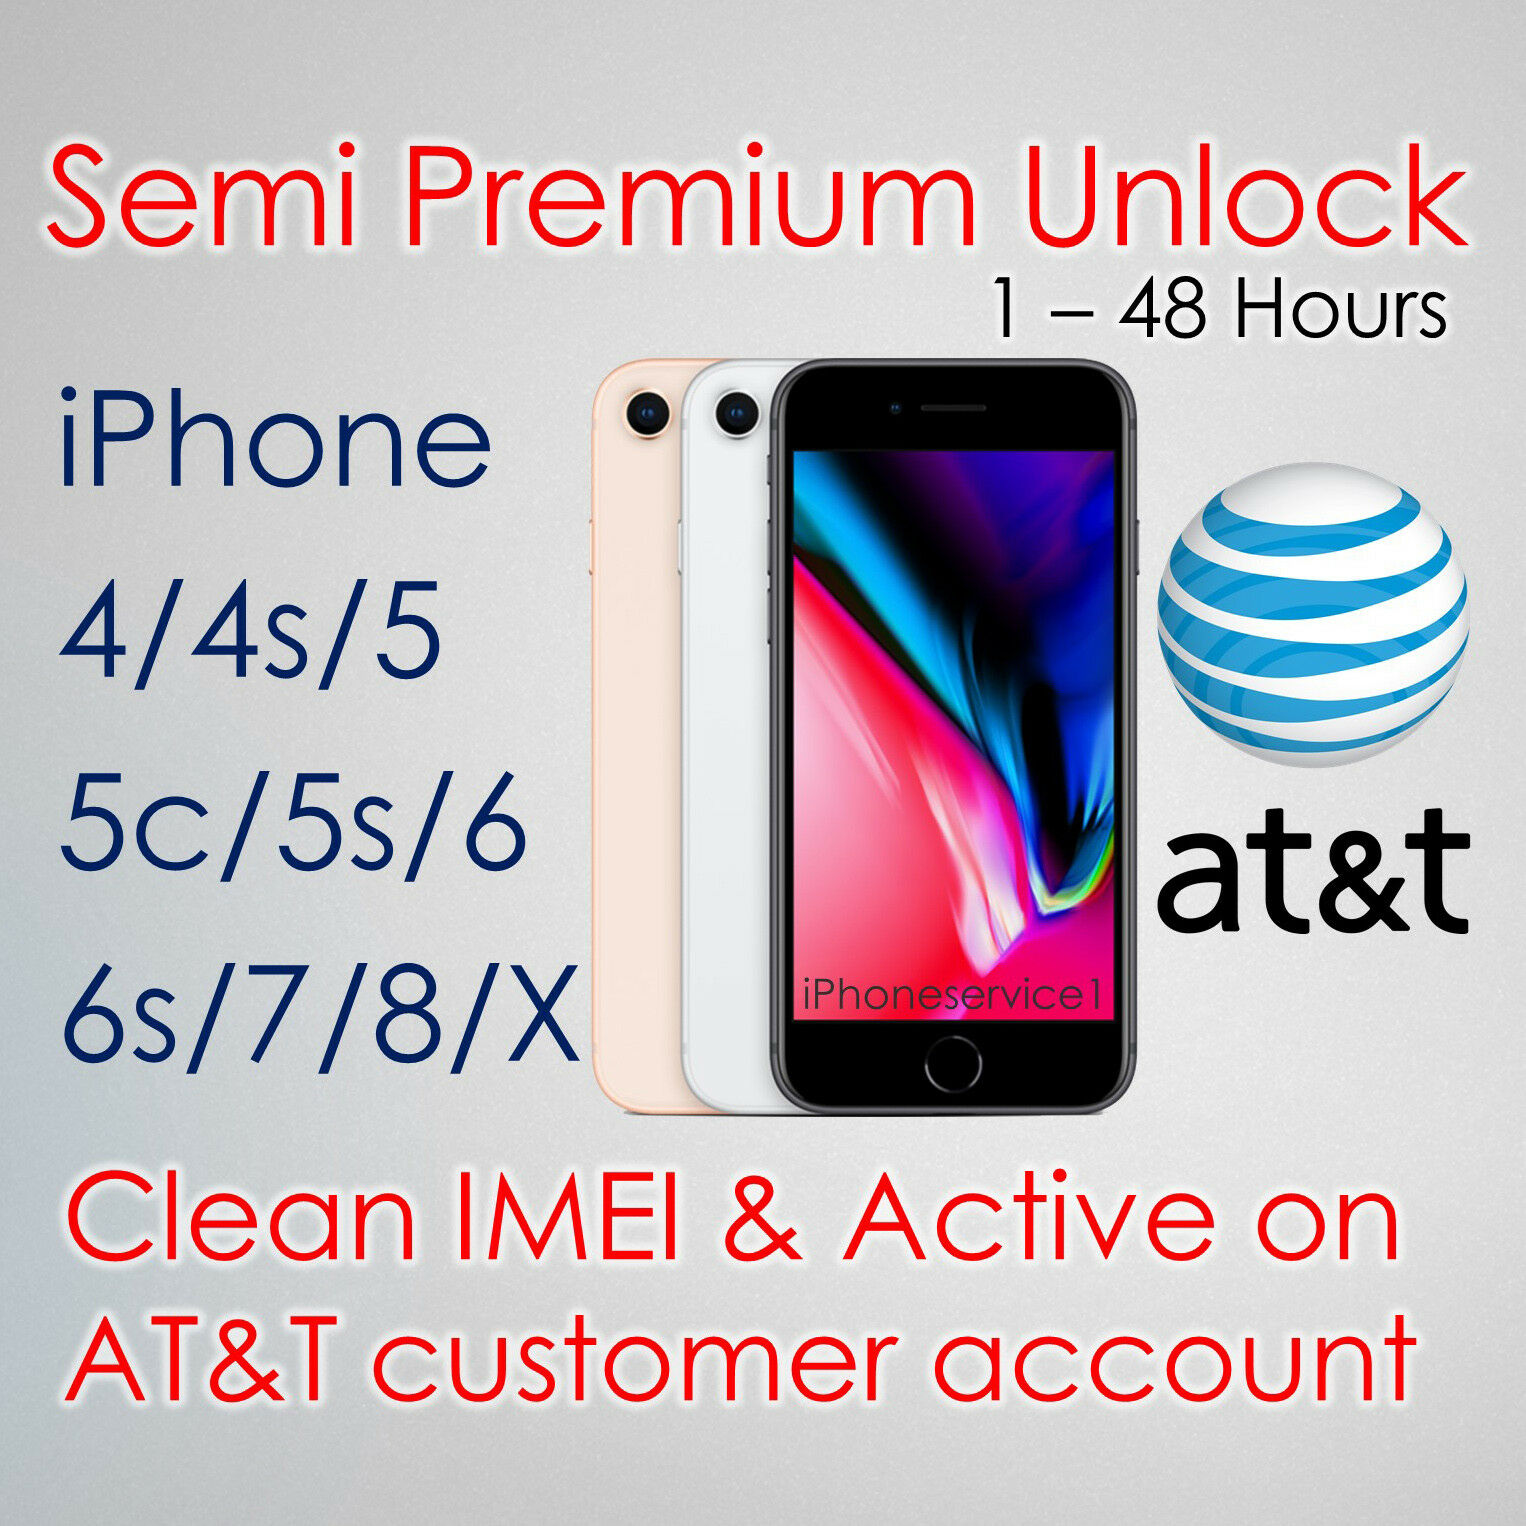 SEMI PREMIUM FACTORY UNLOCK SERVICE CODE FOR AT&T ATT iPhone X 8 7 6s 6 5s 5 4s